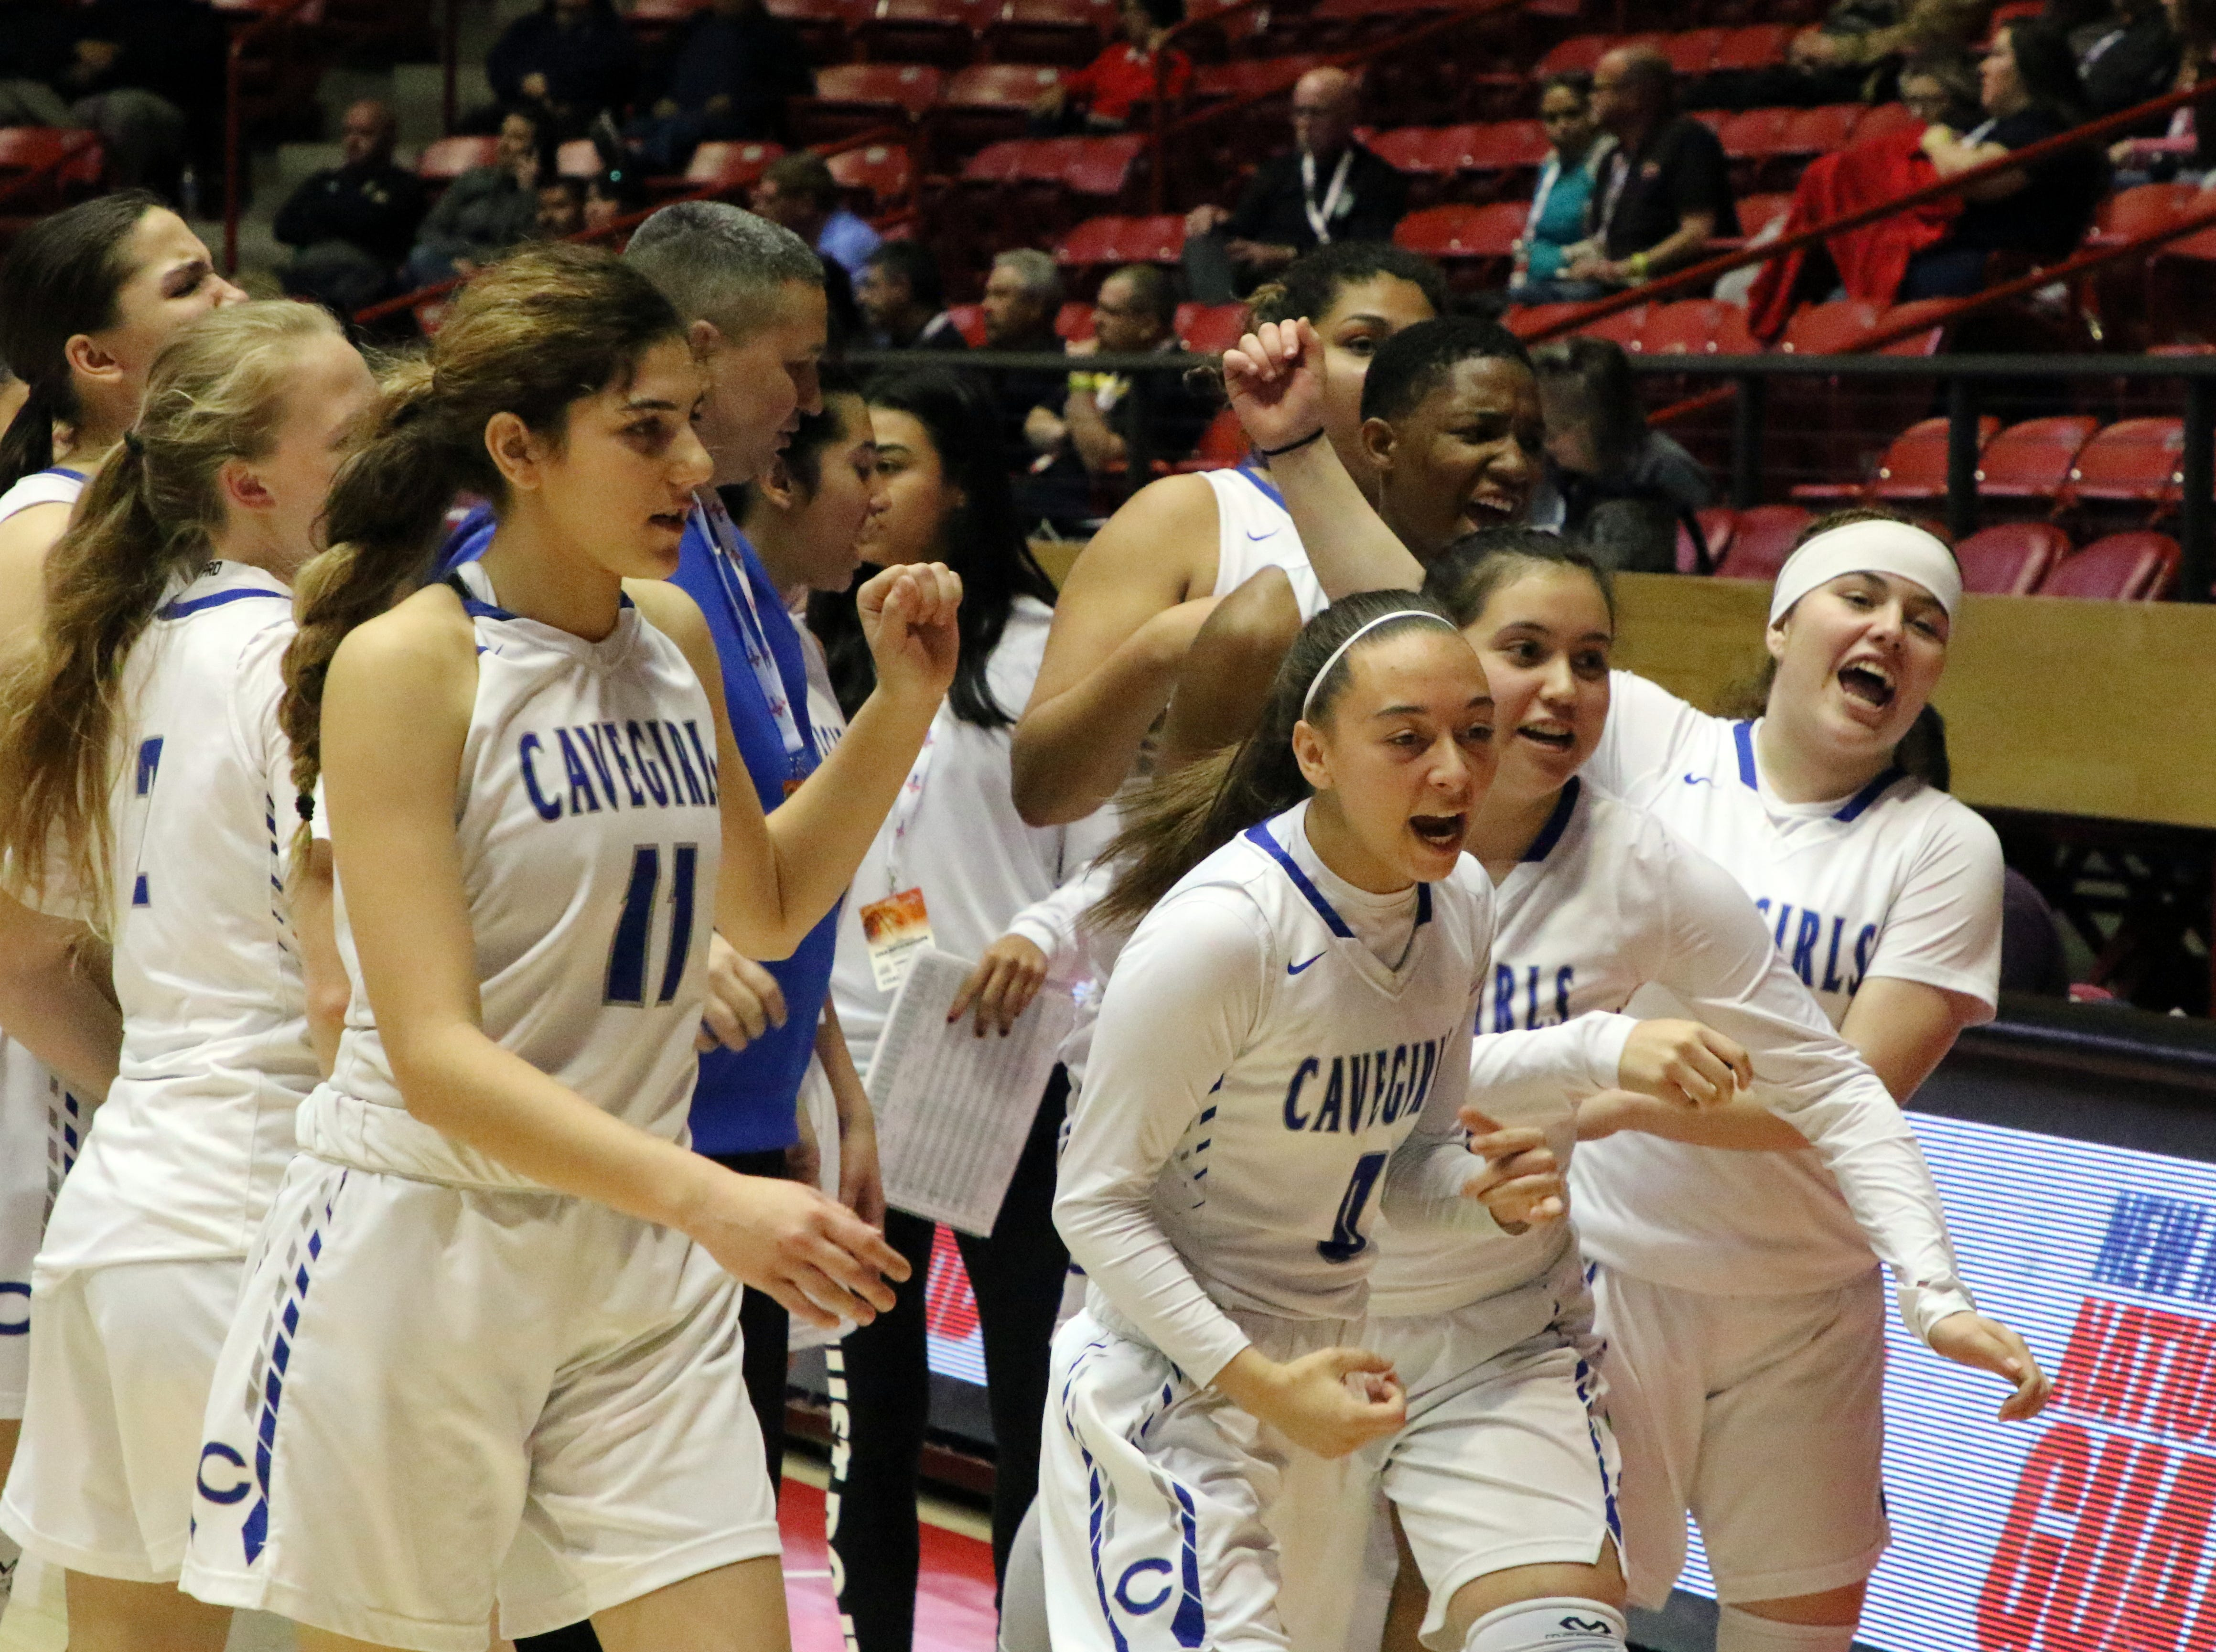 The Carlsbad Cavegirls run off the court celebrating after their 41-39 overtime win on Tuesday morning at The Pit. Carlsbad will play Thursday at 9:45 a.m.